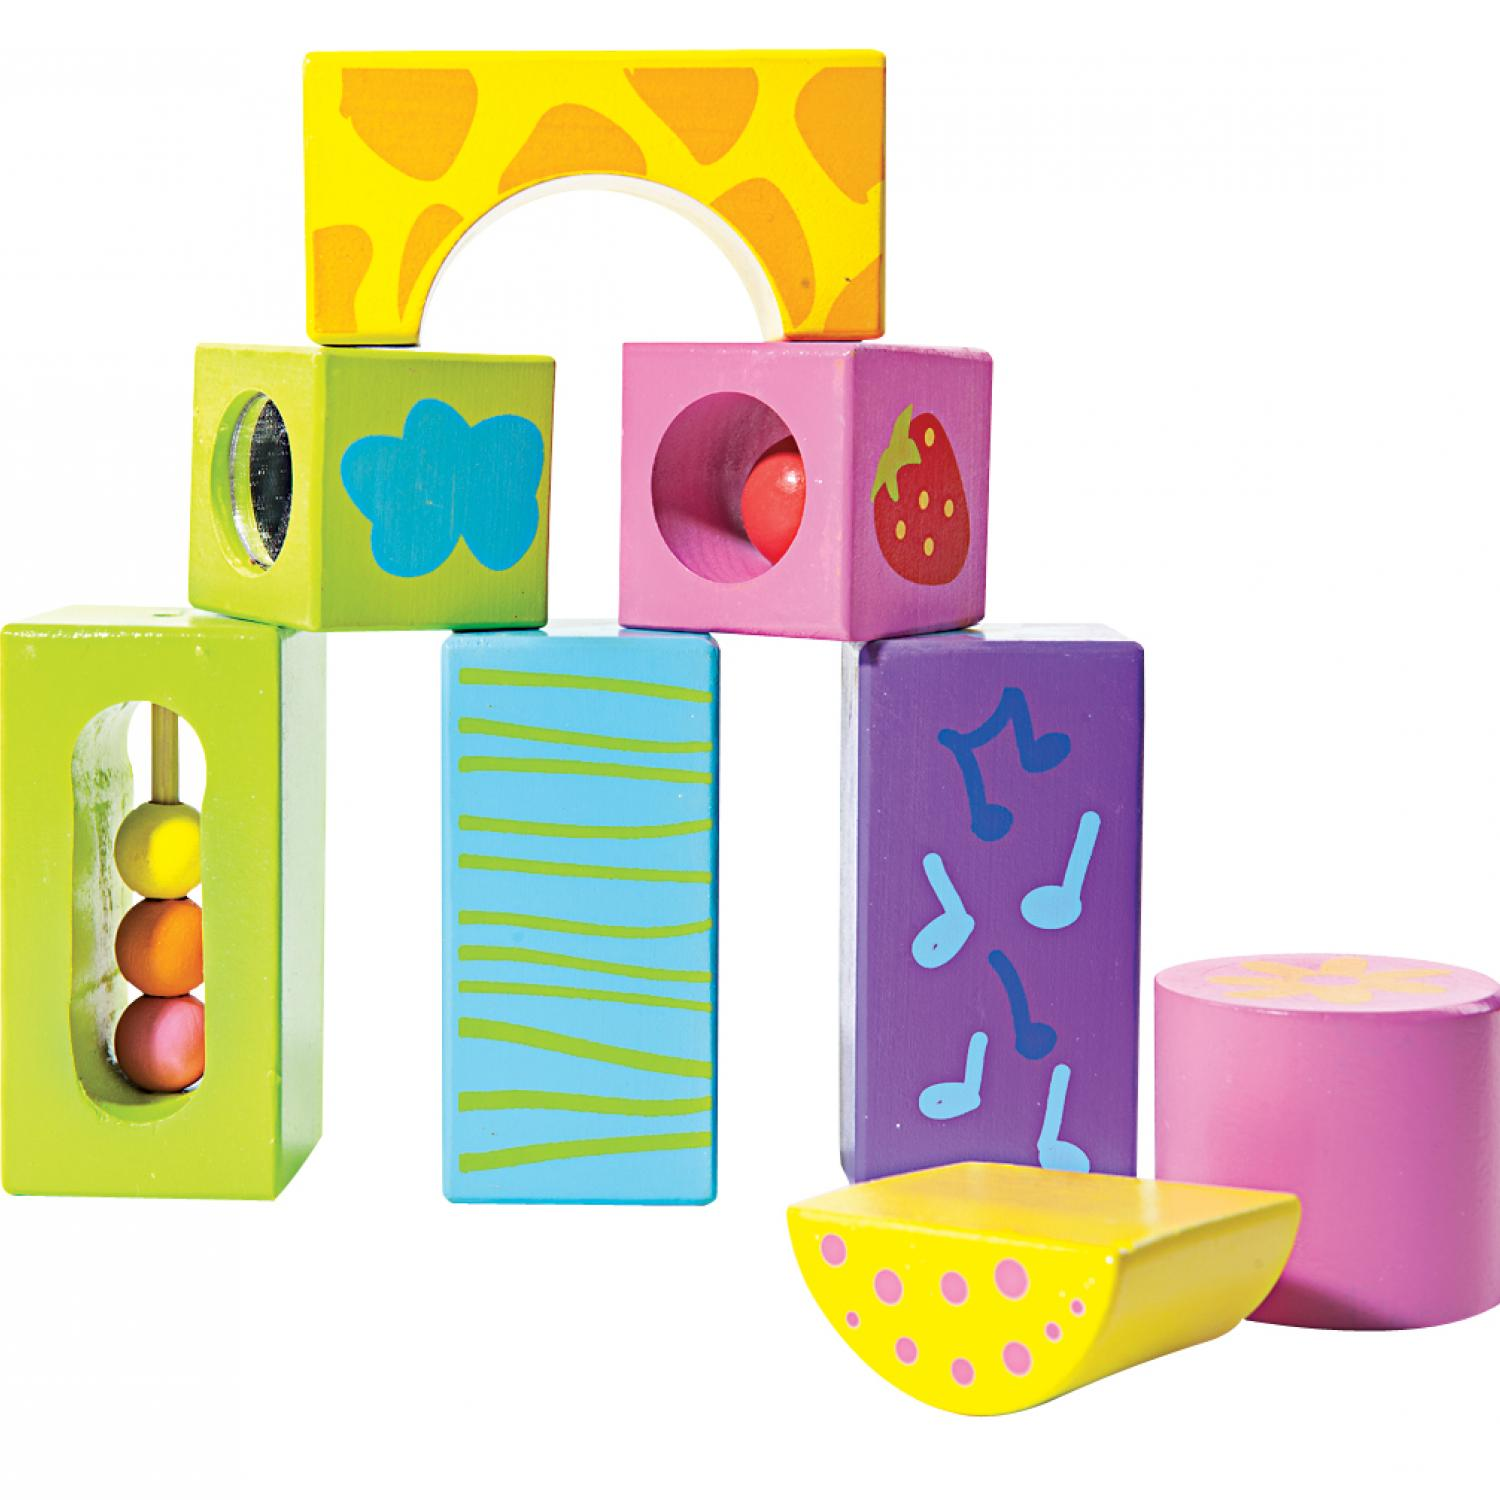 14 Great Educational Baby Toys | Parenting